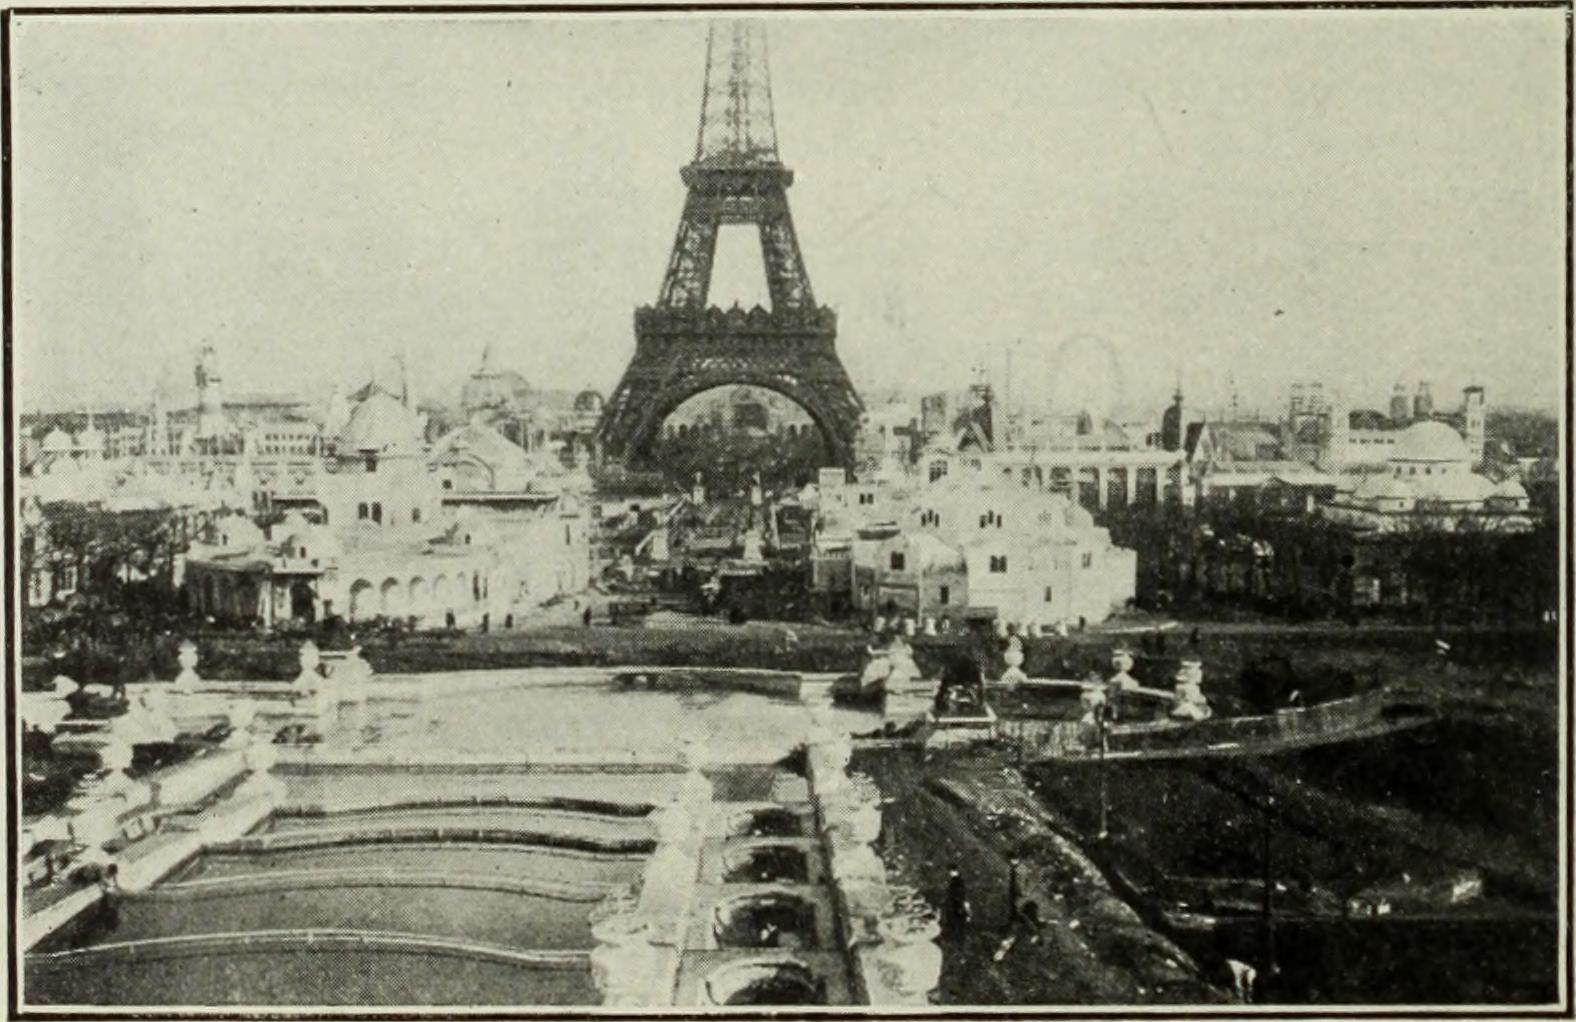 Eiffel Tower Purchased for Move to Baltimore in 1894